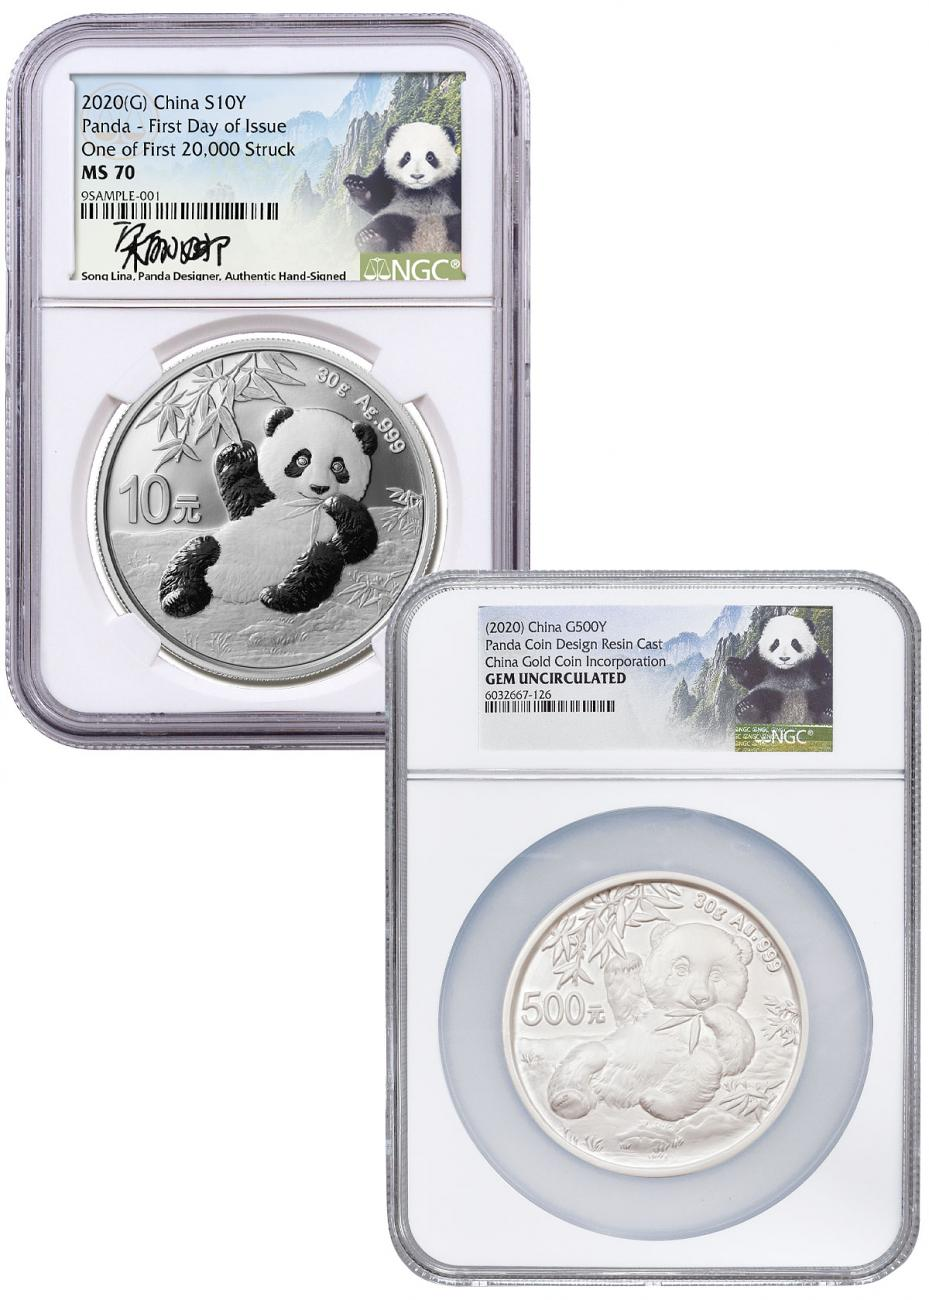 2-Piece Set - 2020 China 30 gm Silver Panda NGC MS70 FDI with Govt. Resin Cast Panda Scarce and Unique Coin Division Song Lina Signed Labels